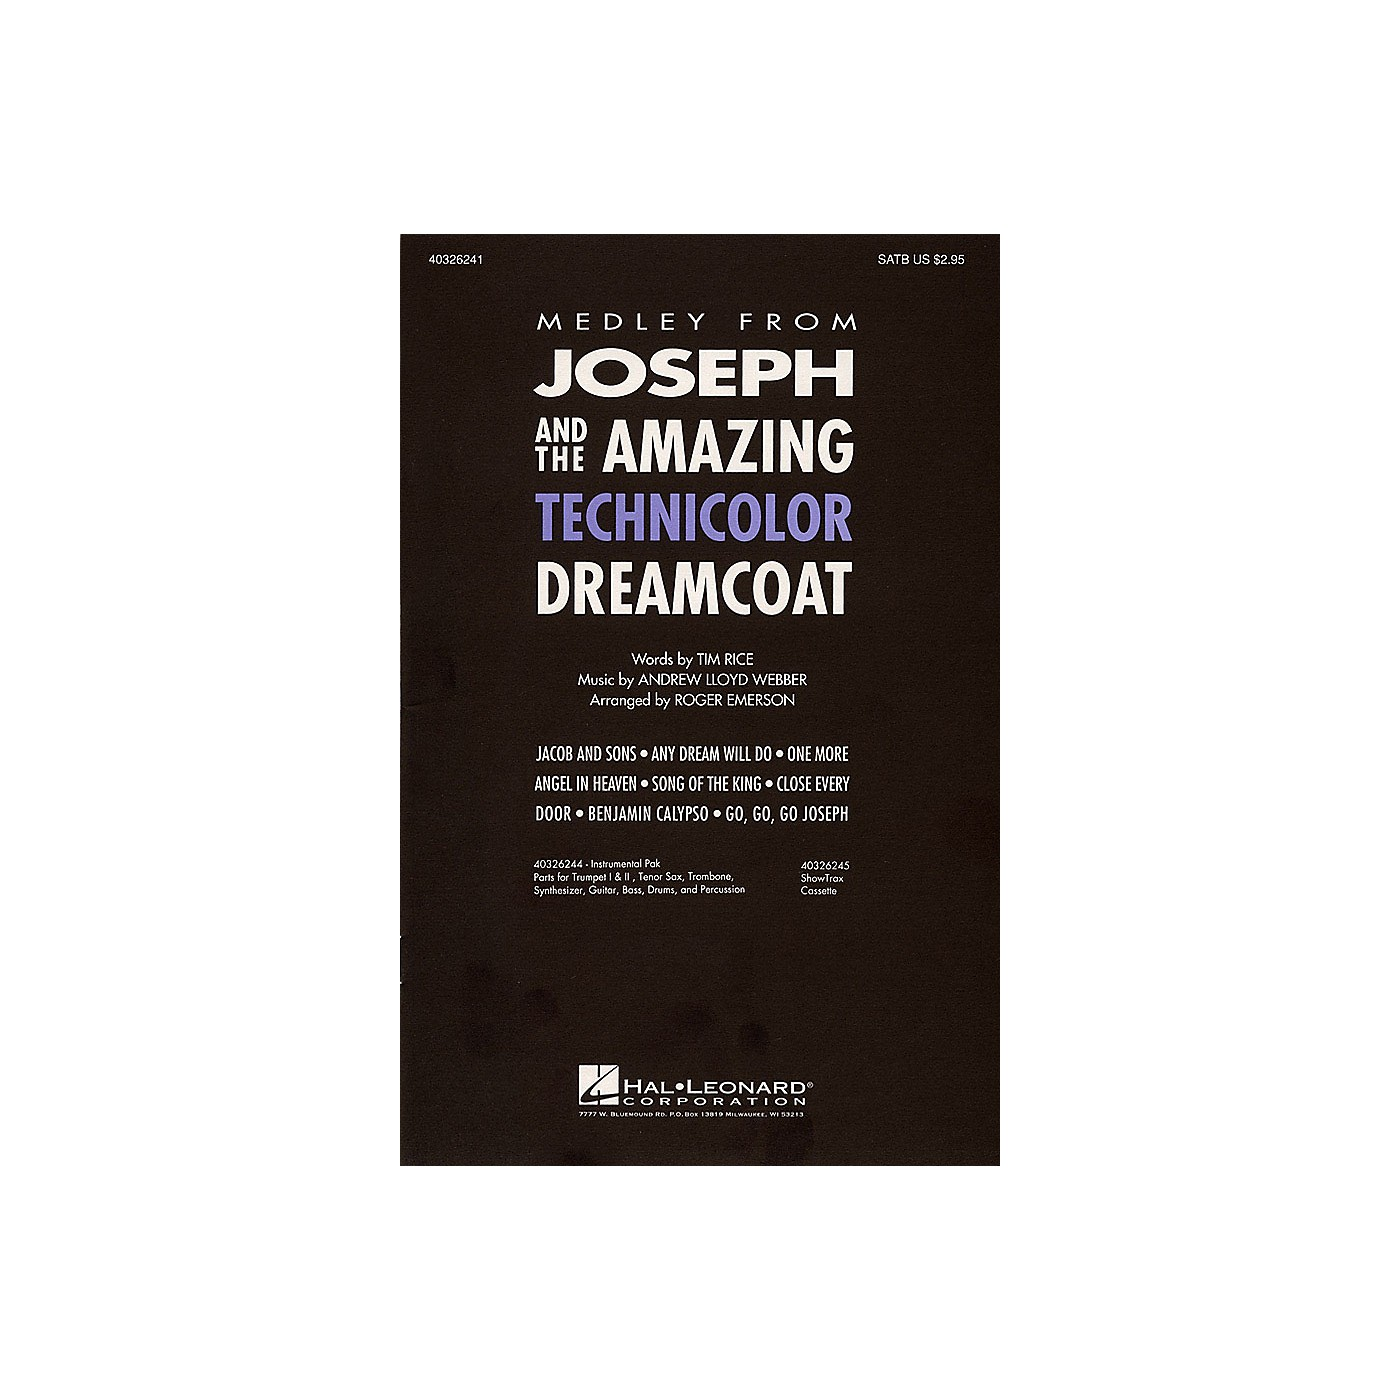 Hal Leonard Joseph and the Amazing Technicolor Dreamcoat (Medley) ShowTrax CD Arranged by Roger Emerson thumbnail